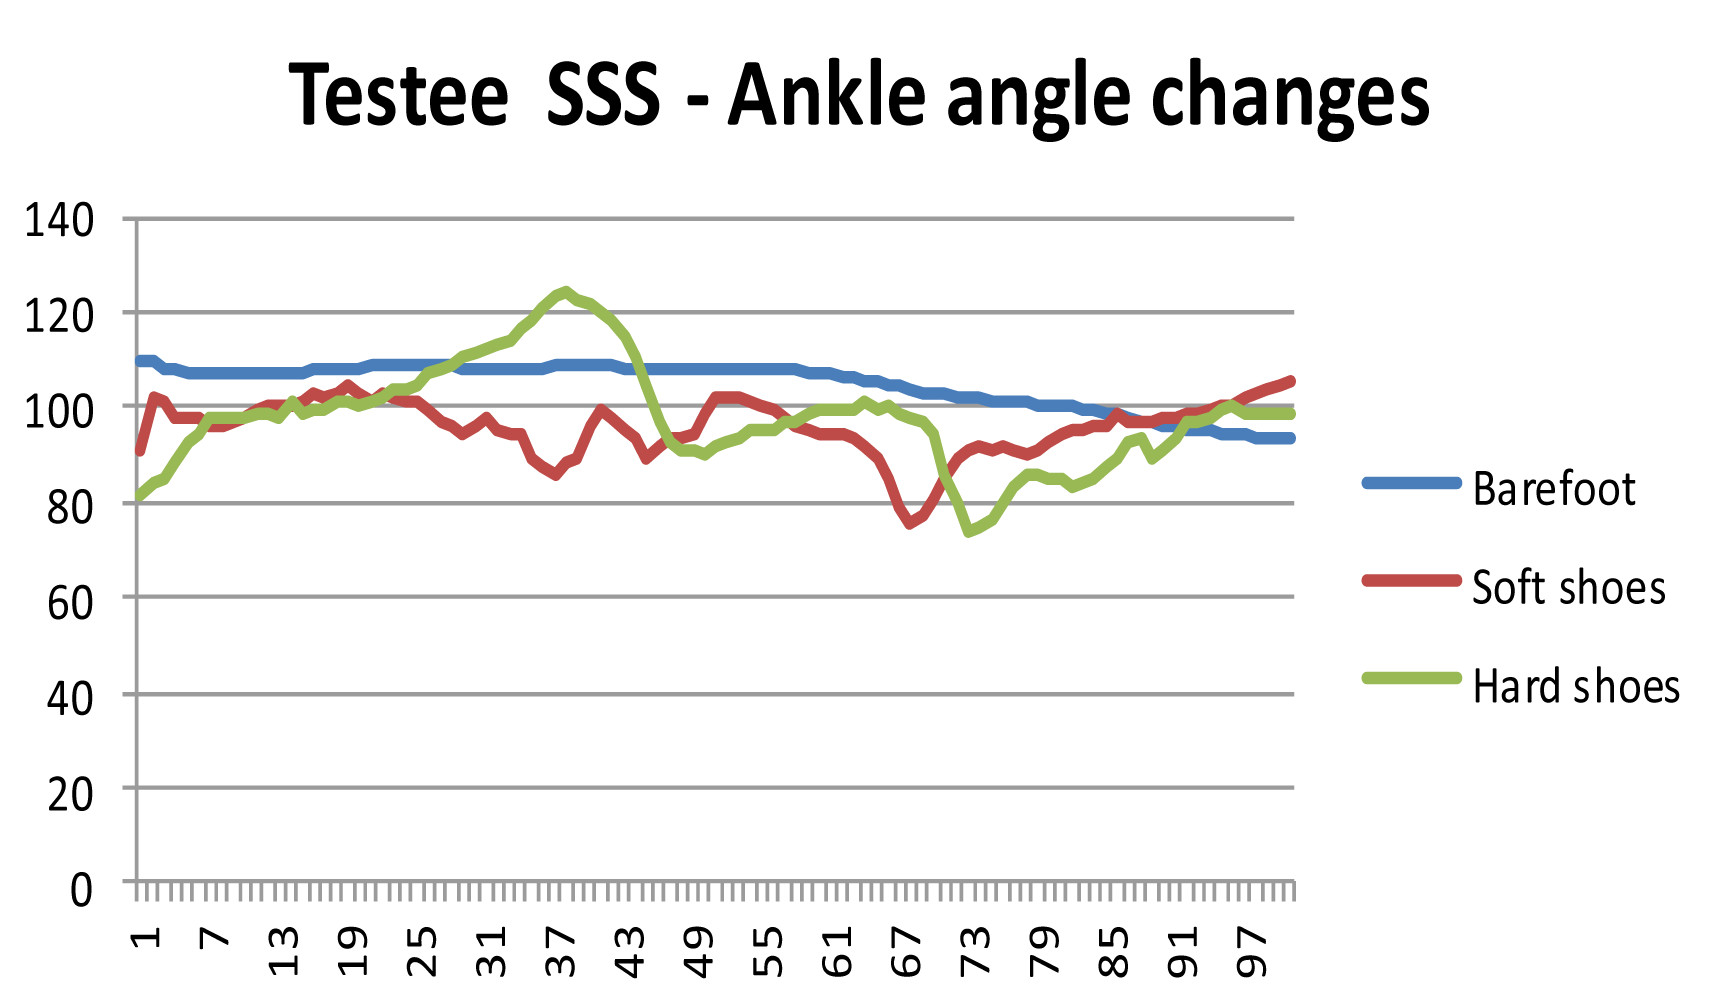 Testee SSS - Ankle angle changes